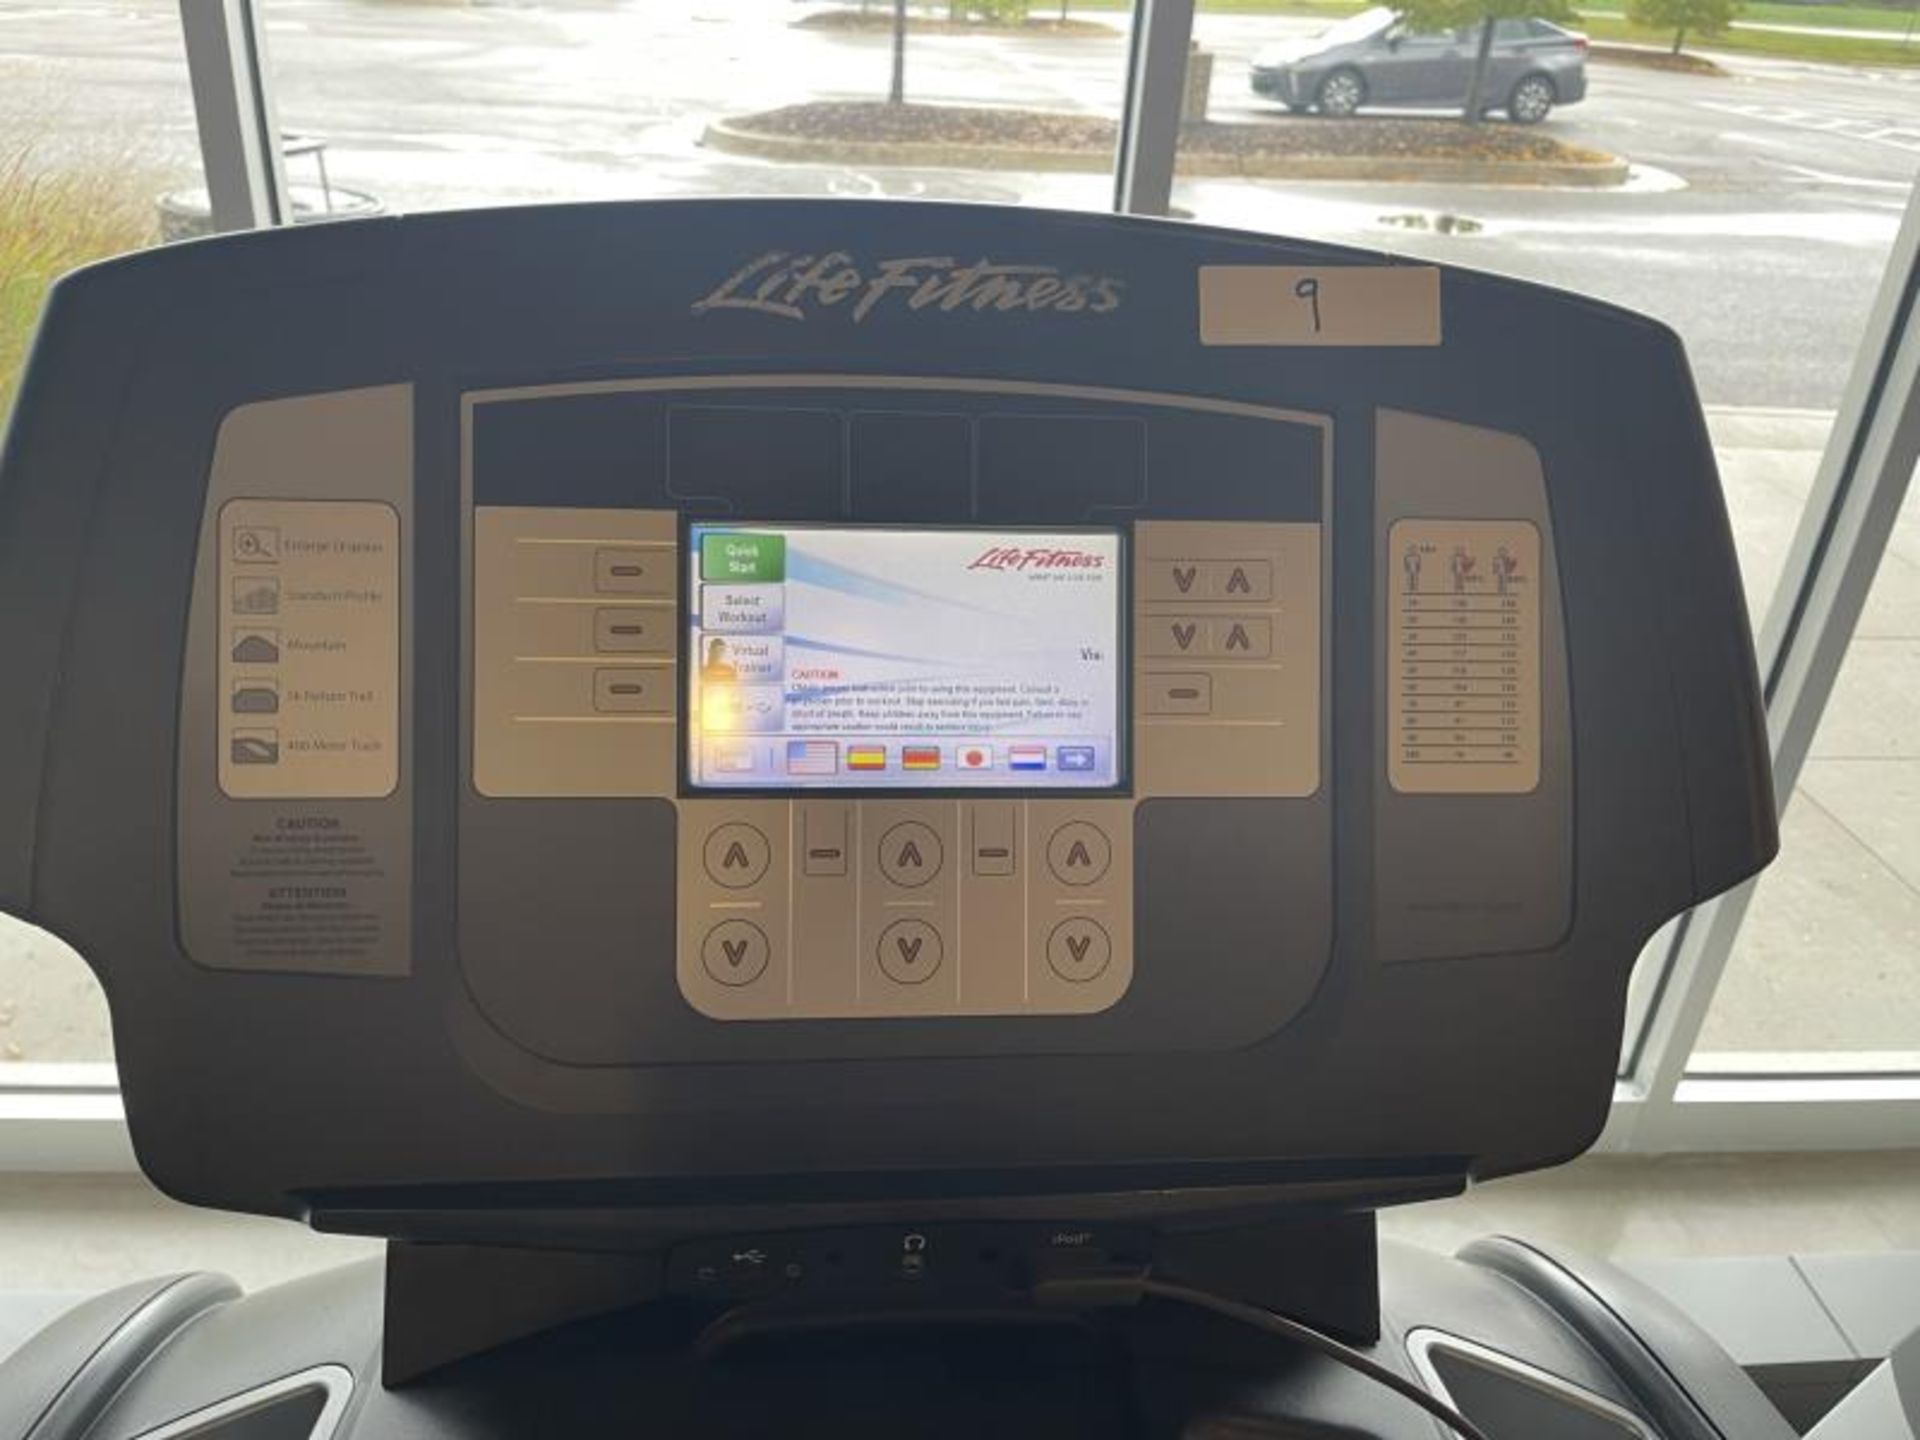 Life Fitness Treadmill M: 95T with Flex Deck, Shock Absorption System SN: TET106305 - Image 2 of 2